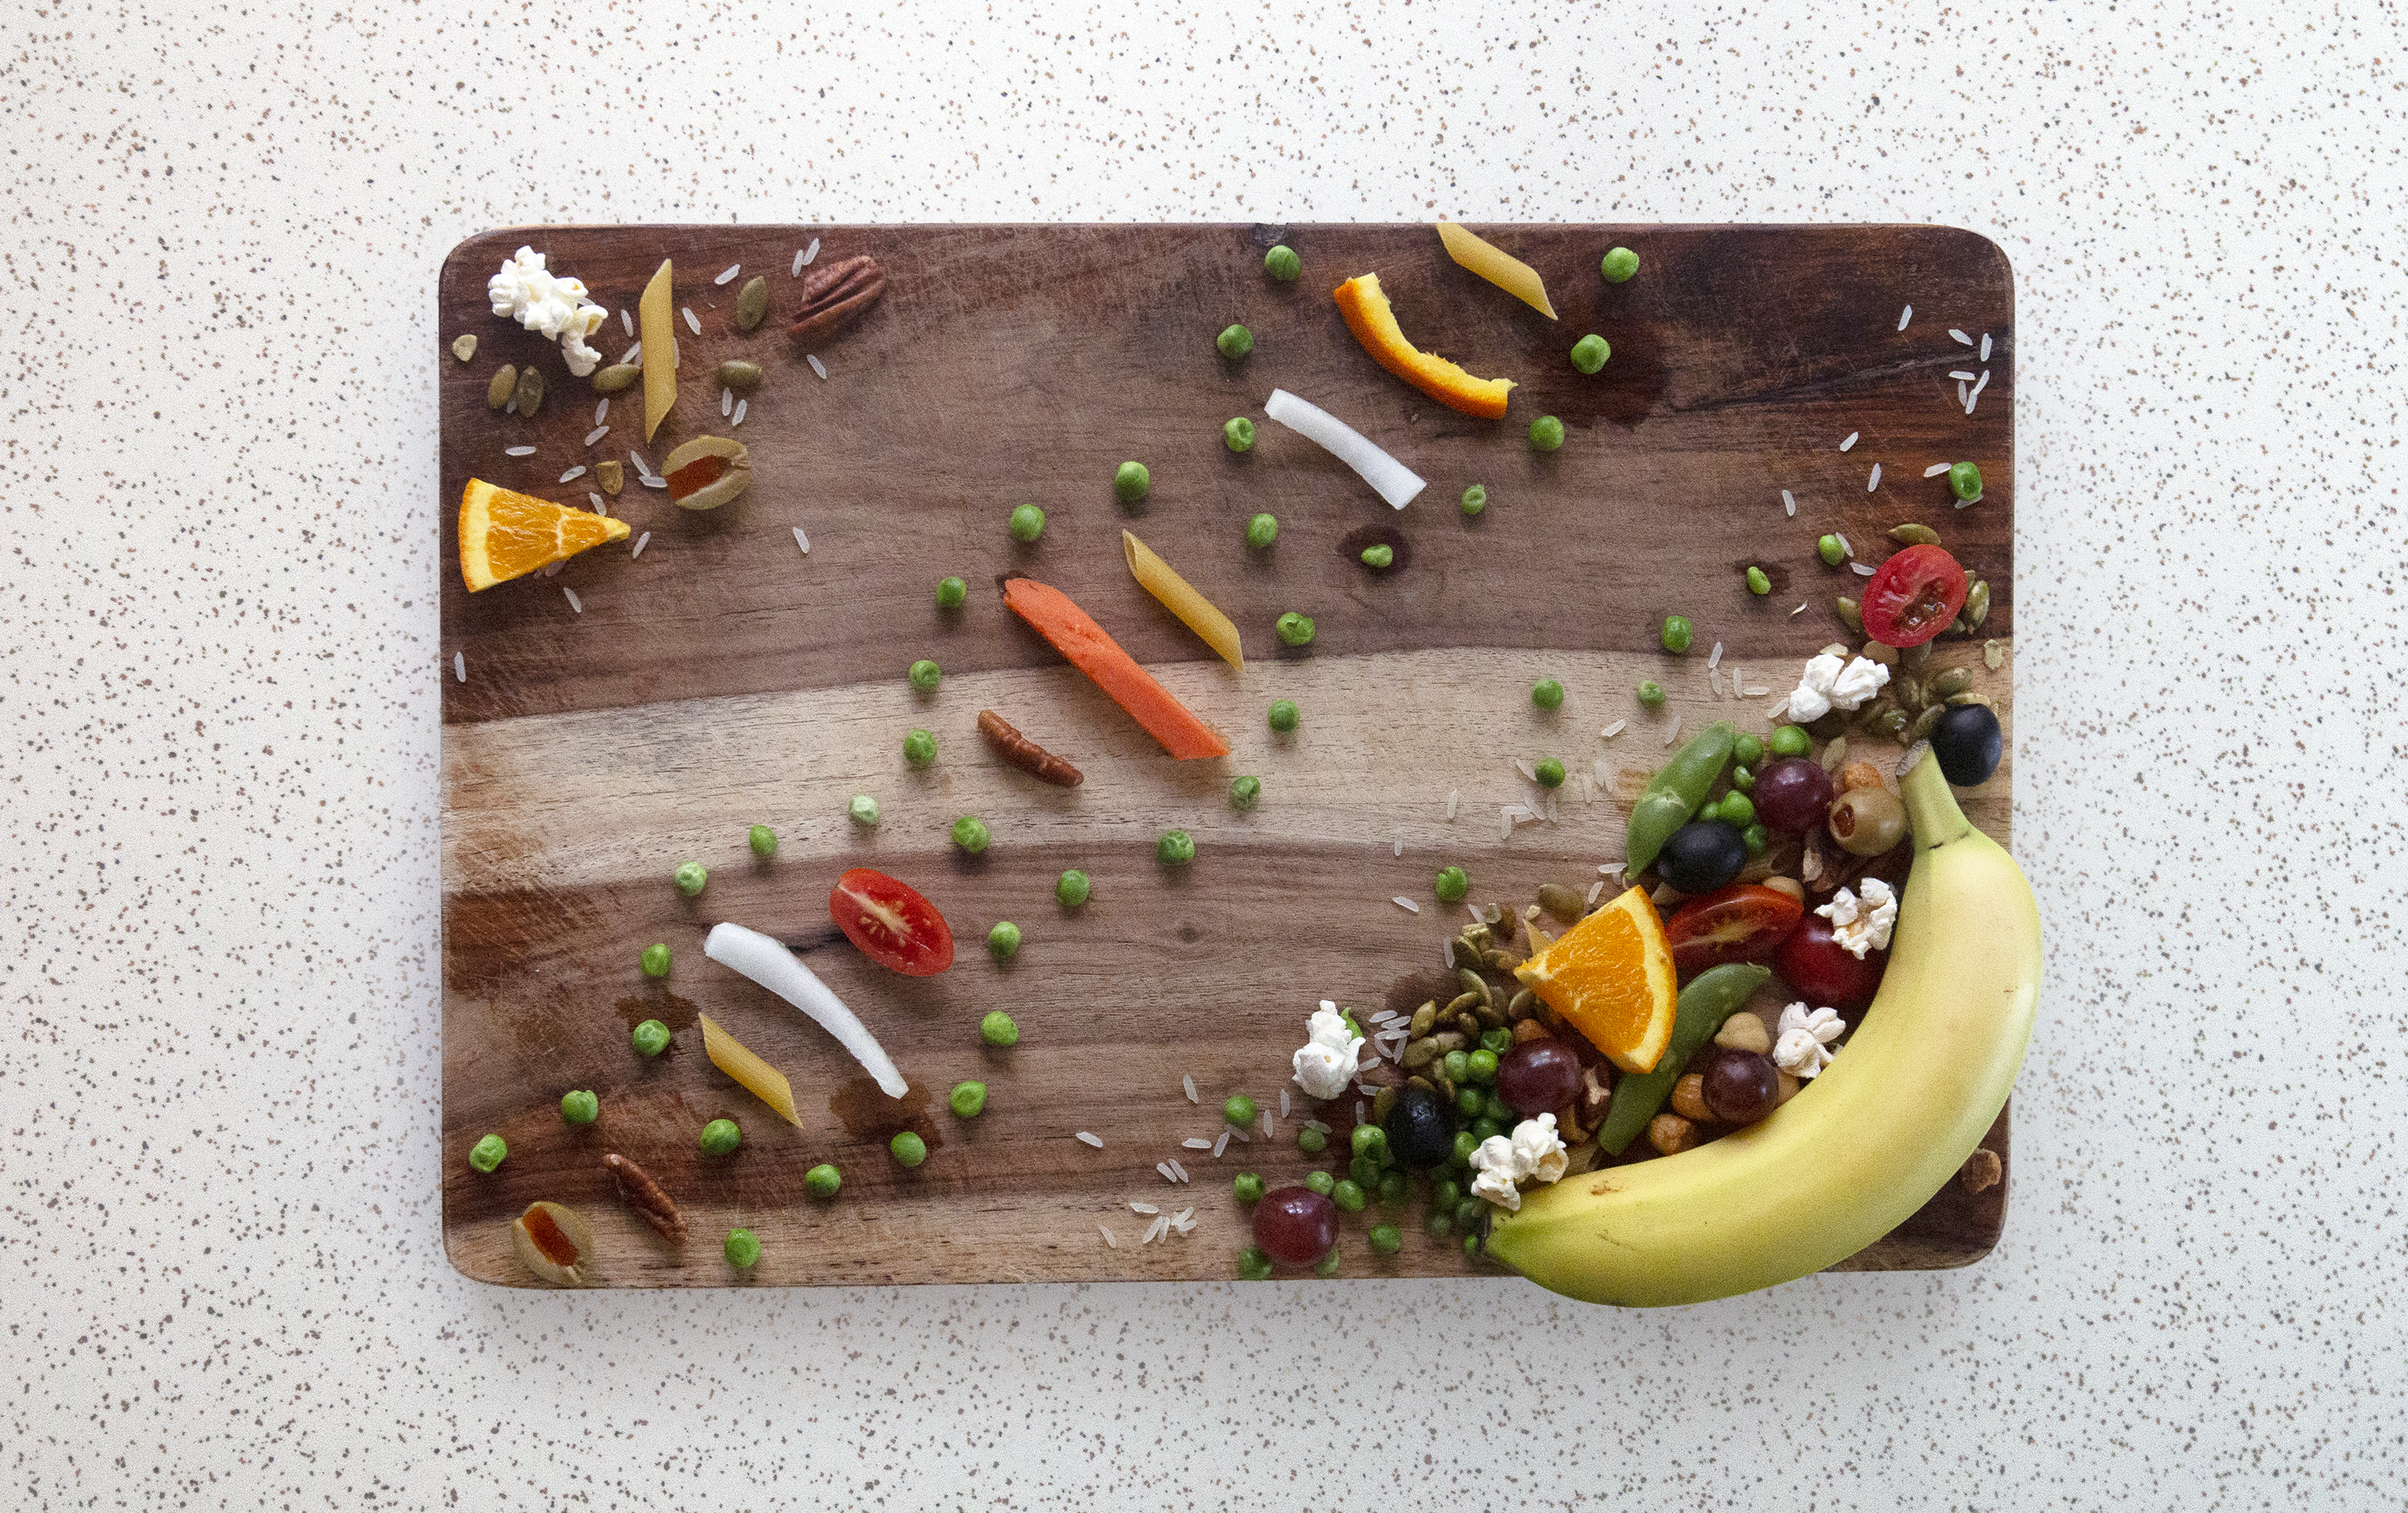 a cutting board with a DNA strand made out of food